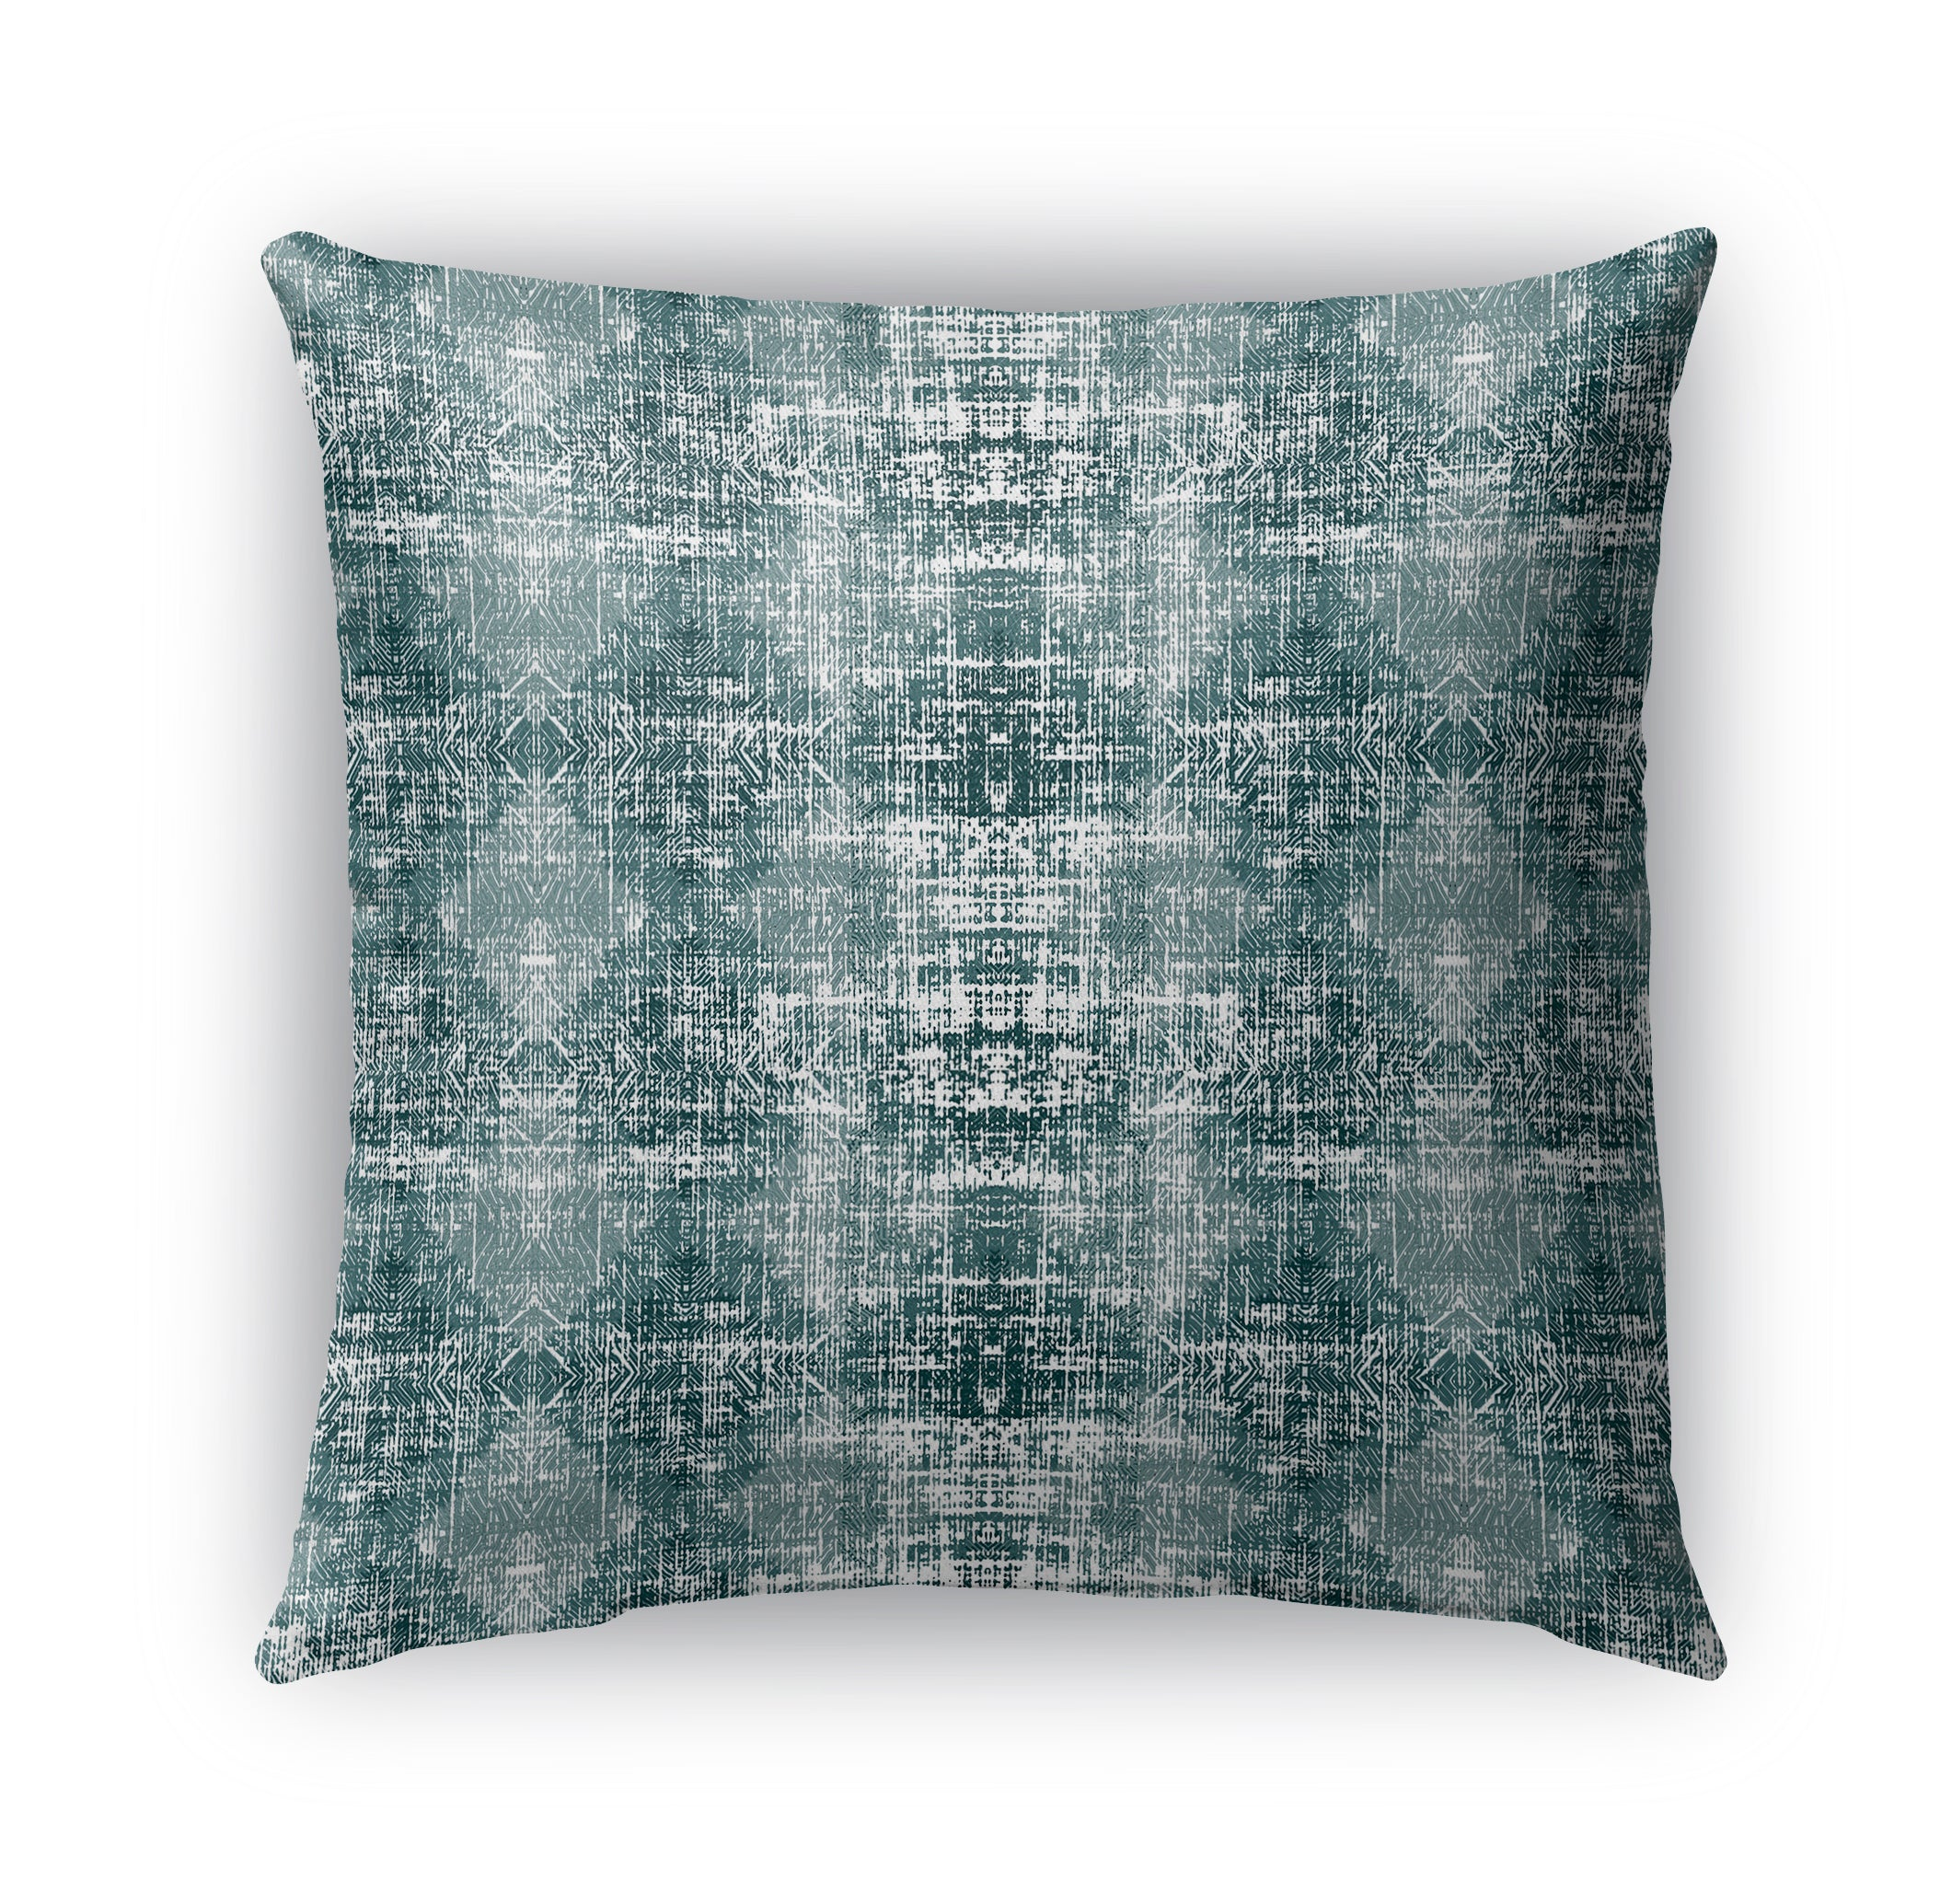 TURQUOISE DISTRESSED Indoor|Outdoor Pillow By Michelle Parascandolo